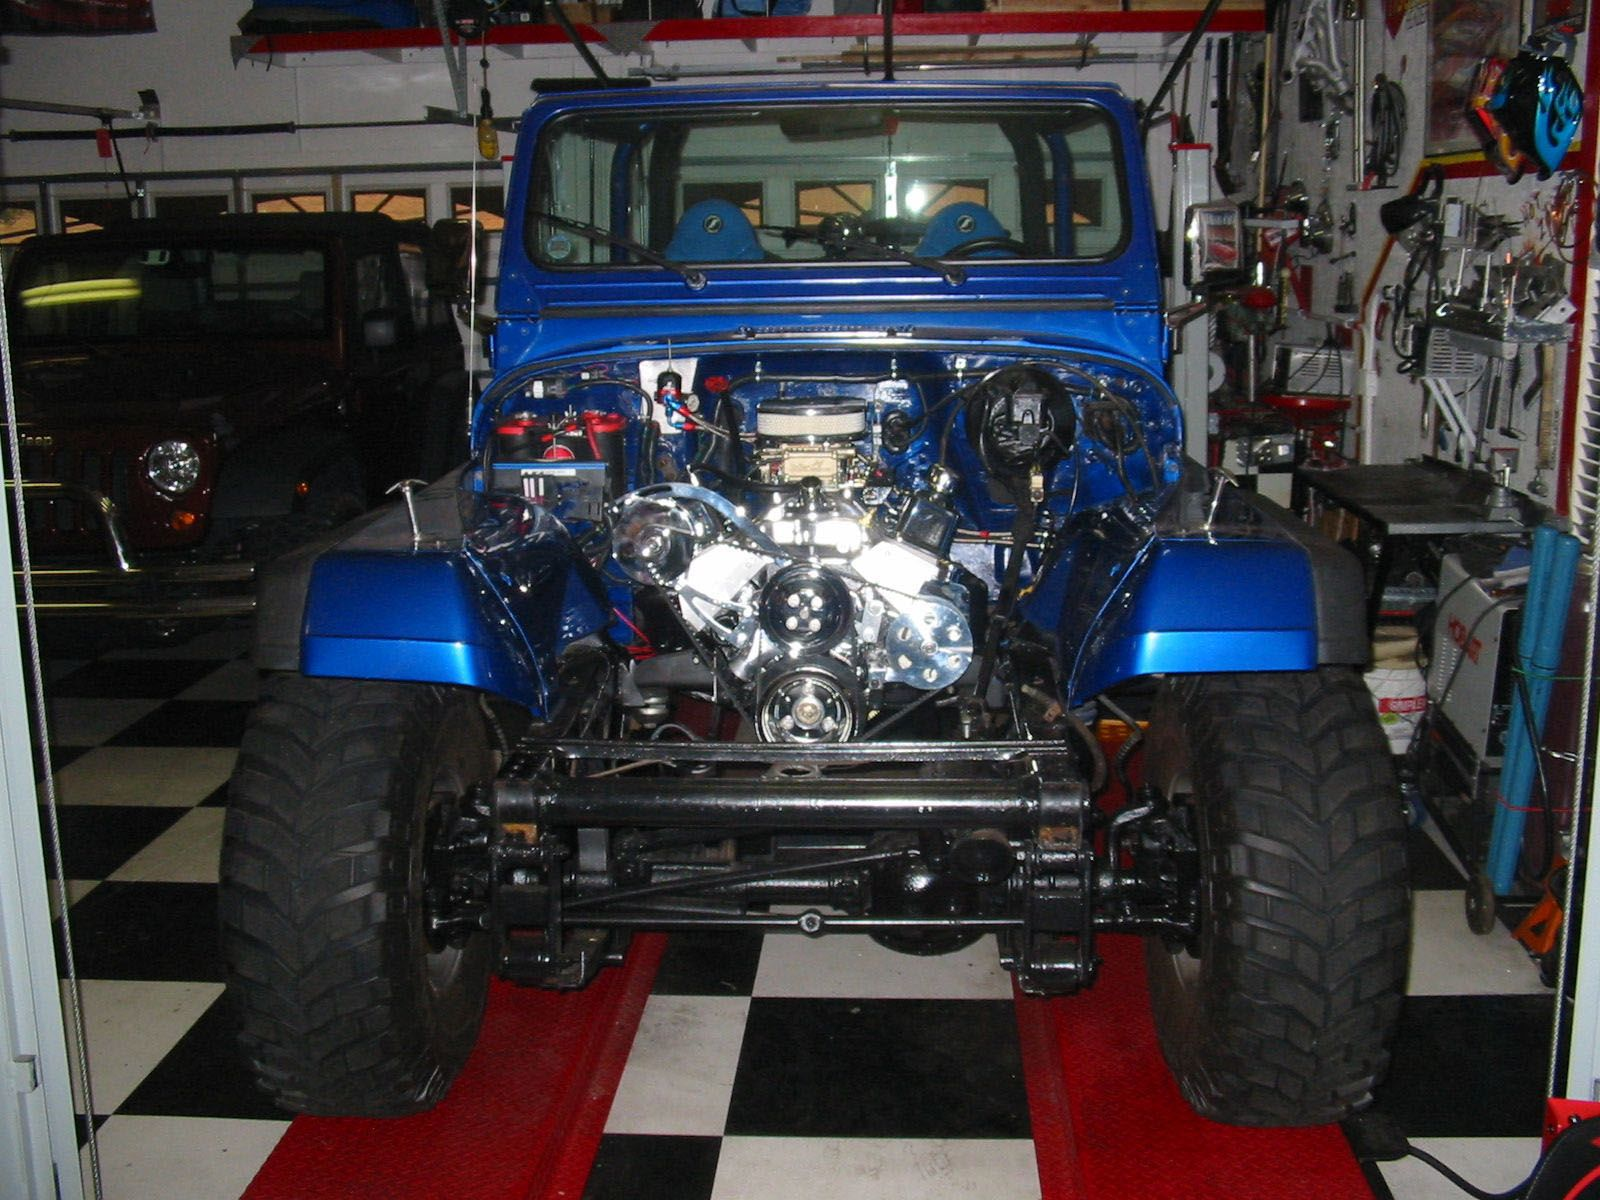 383ci stroker crate engine small block gm style longblock blueprint engines 383ci stroker crate engine small block gm style longblock aluminum heads flat tappet cam malvernweather Image collections